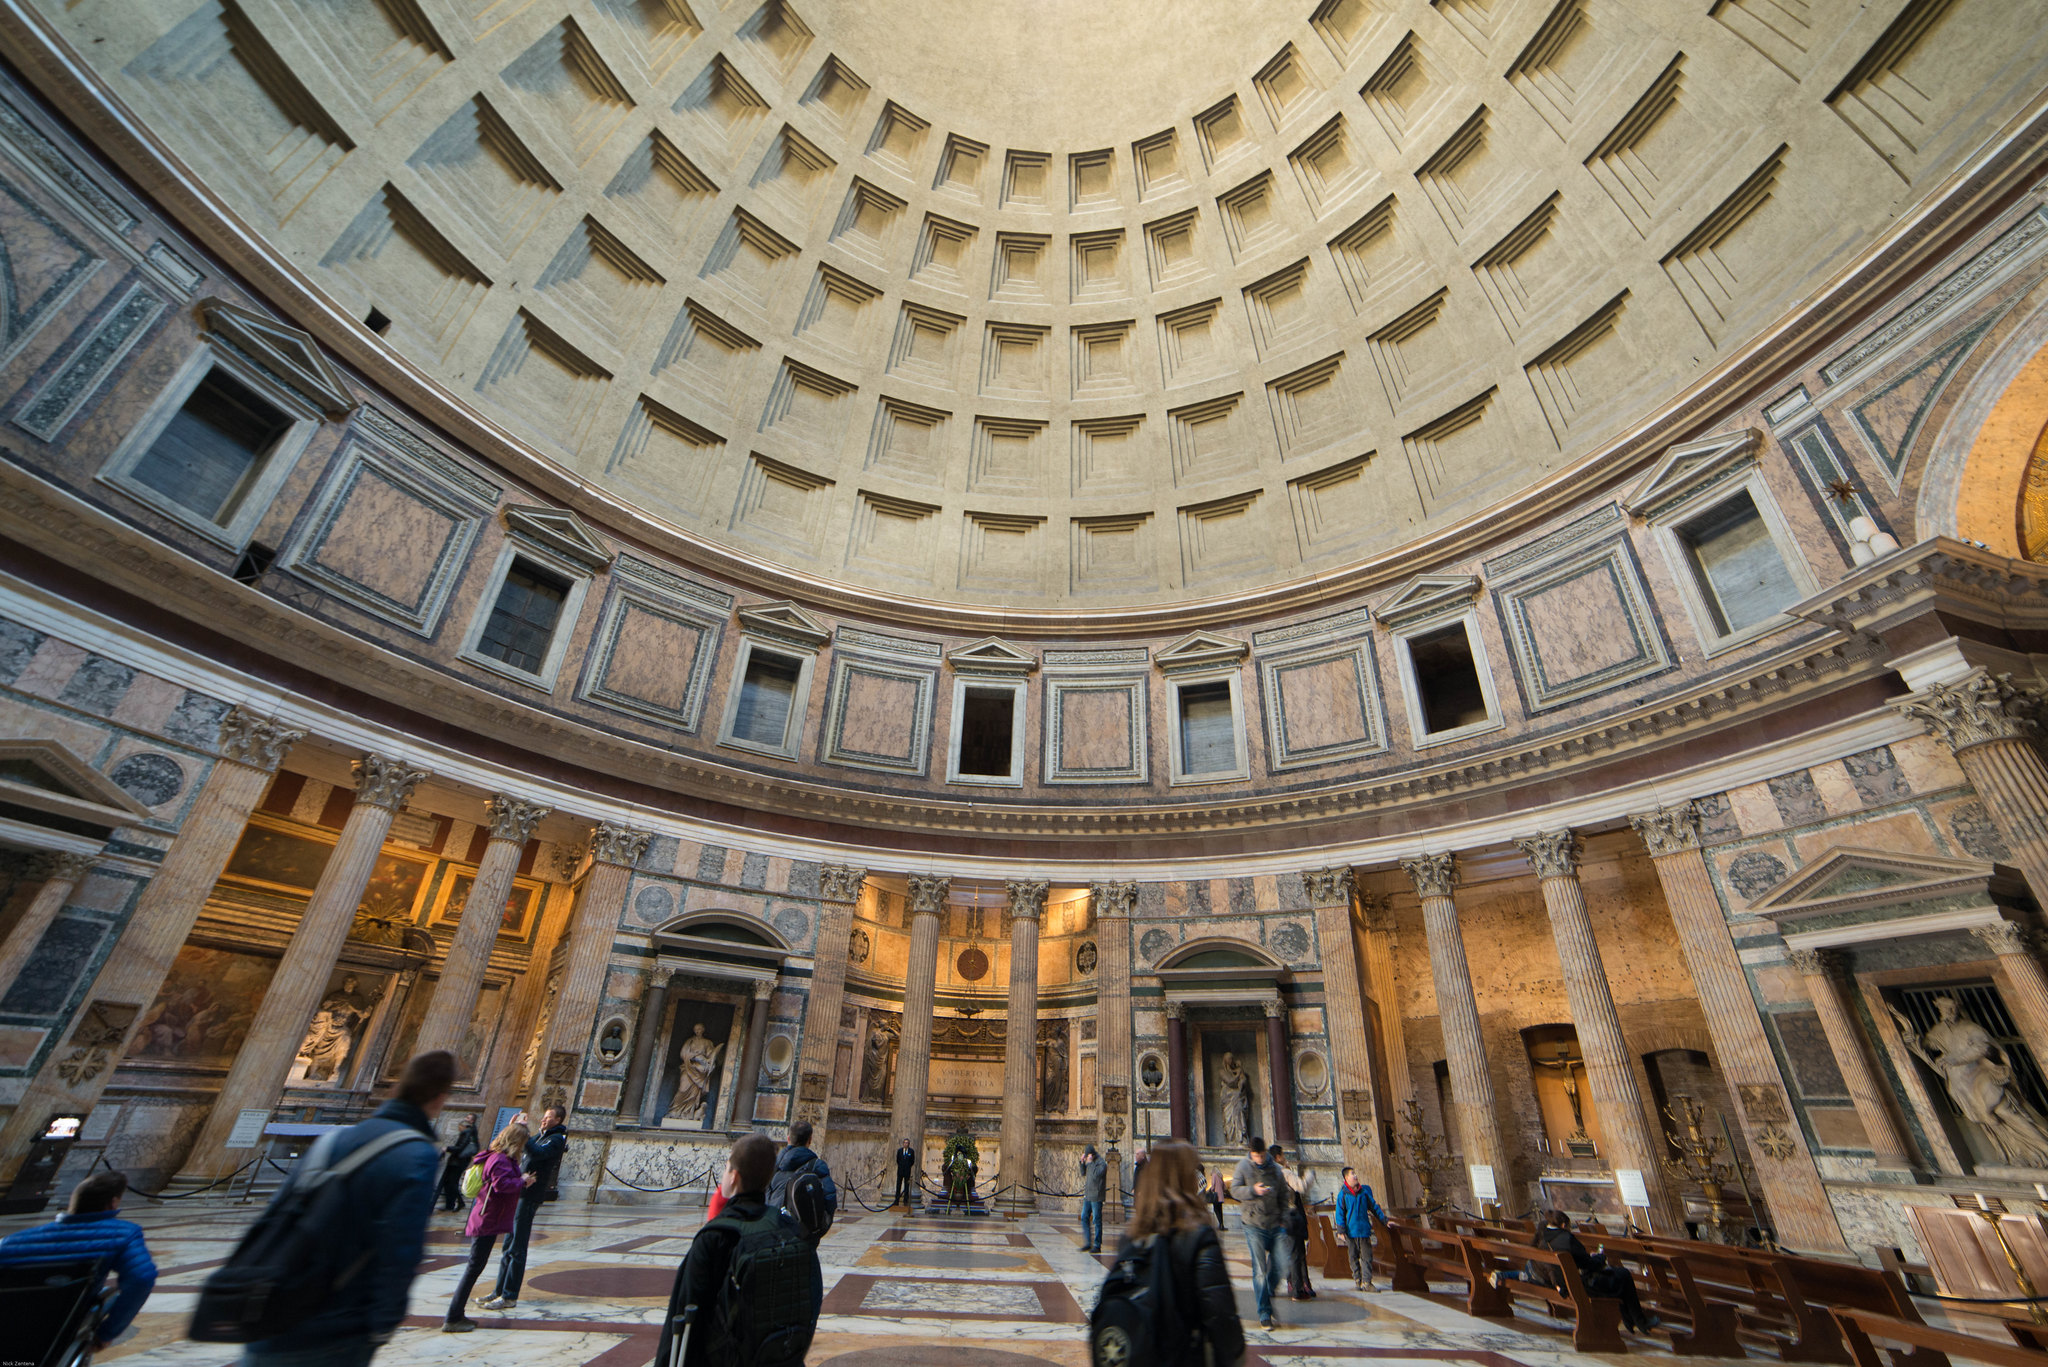 Pantheon Rome Italy interior tourists